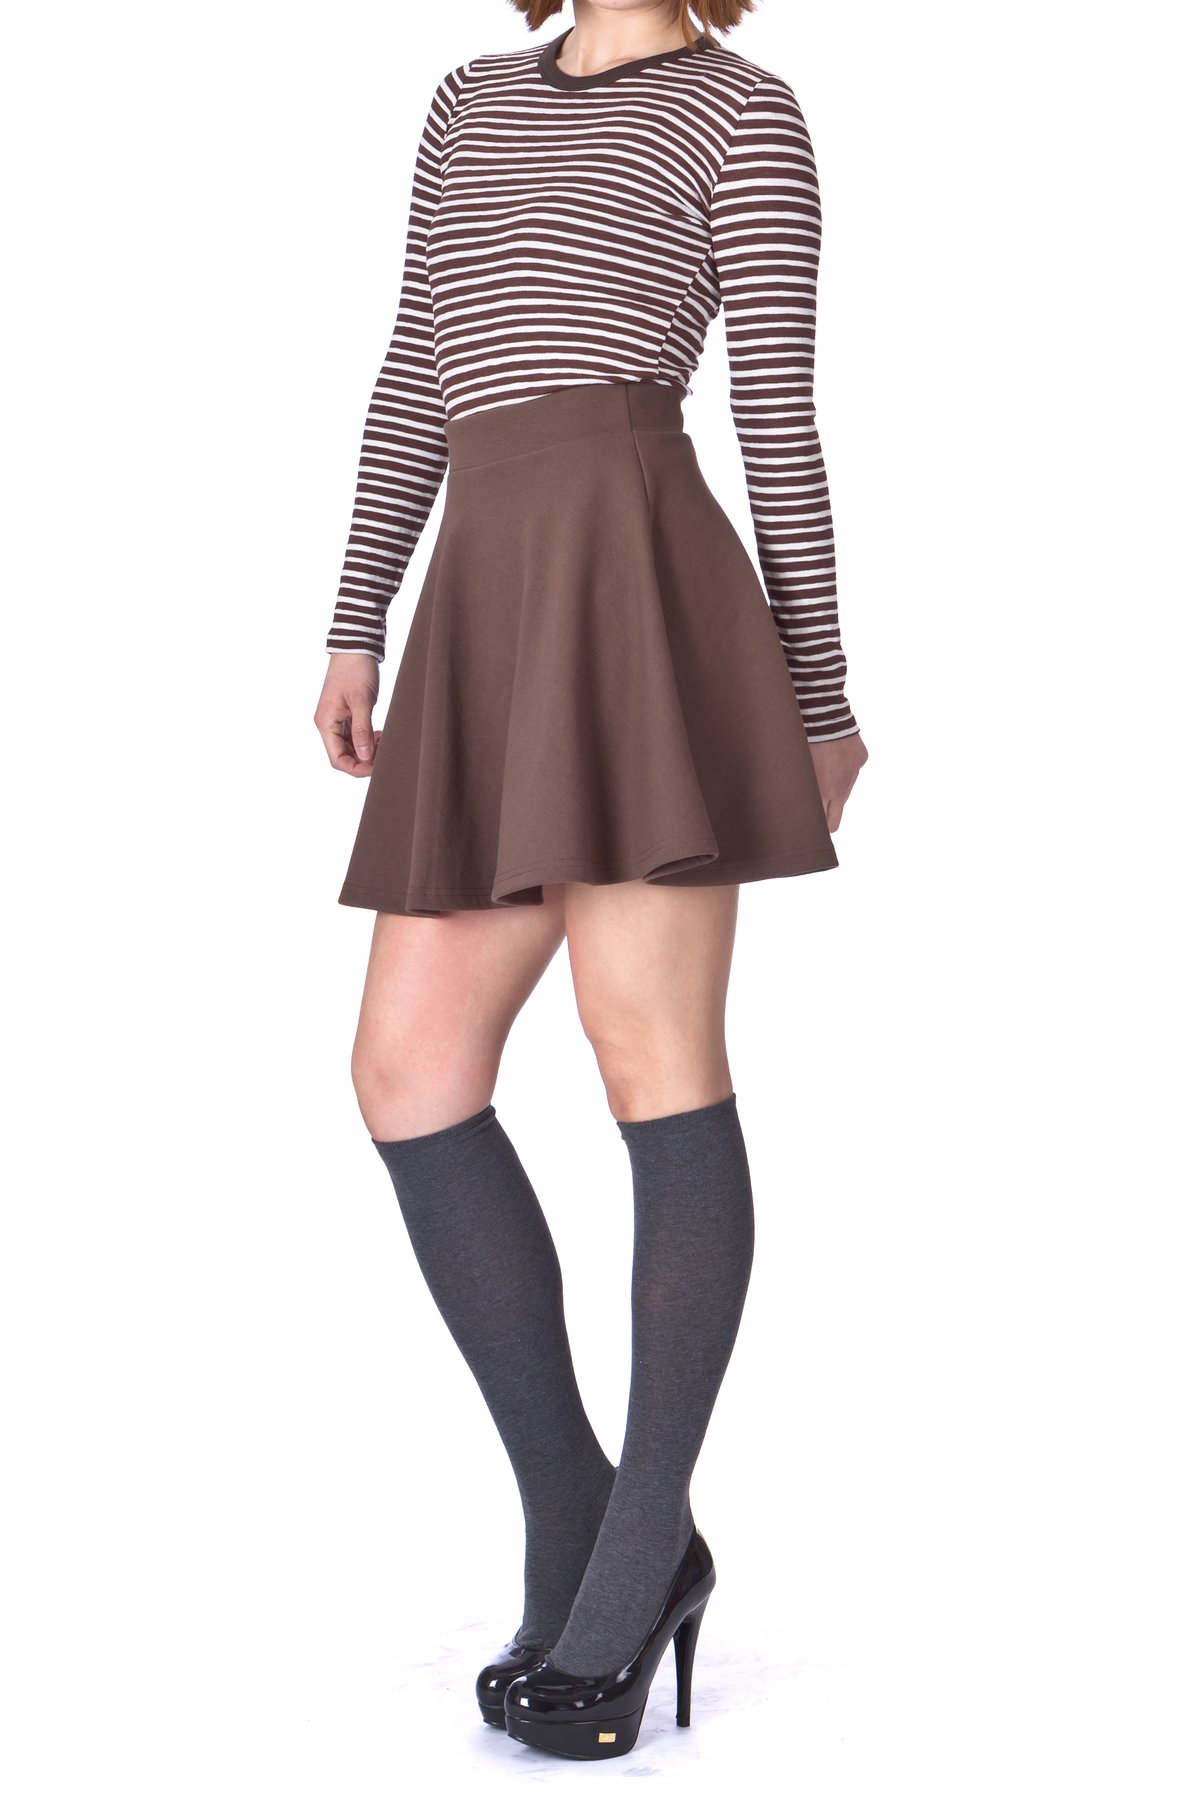 Basic Solid Stretchy Cotton High Waist A line Flared Skater Mini Skirt Brown 1